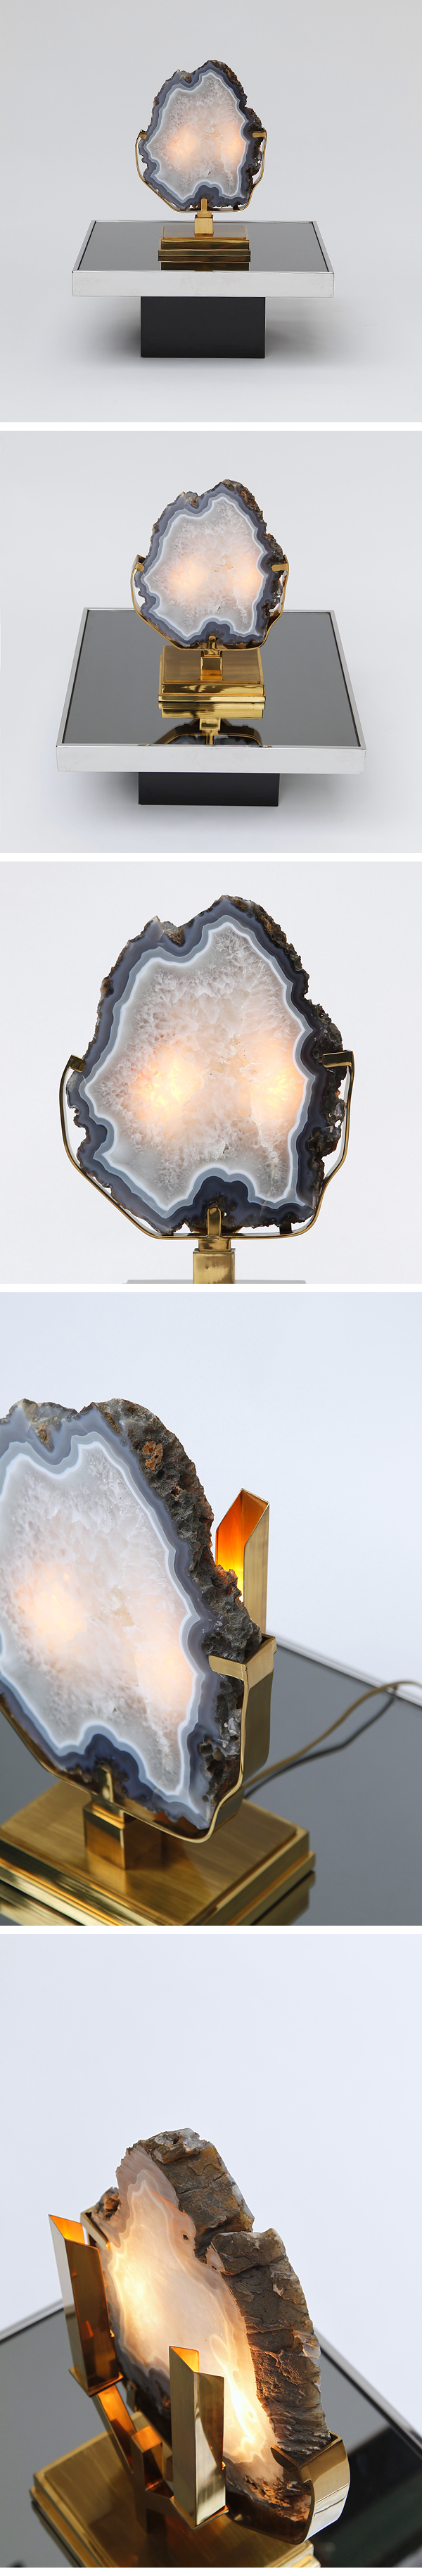 Willy Daro, Table Lamp, Agate, 1970's